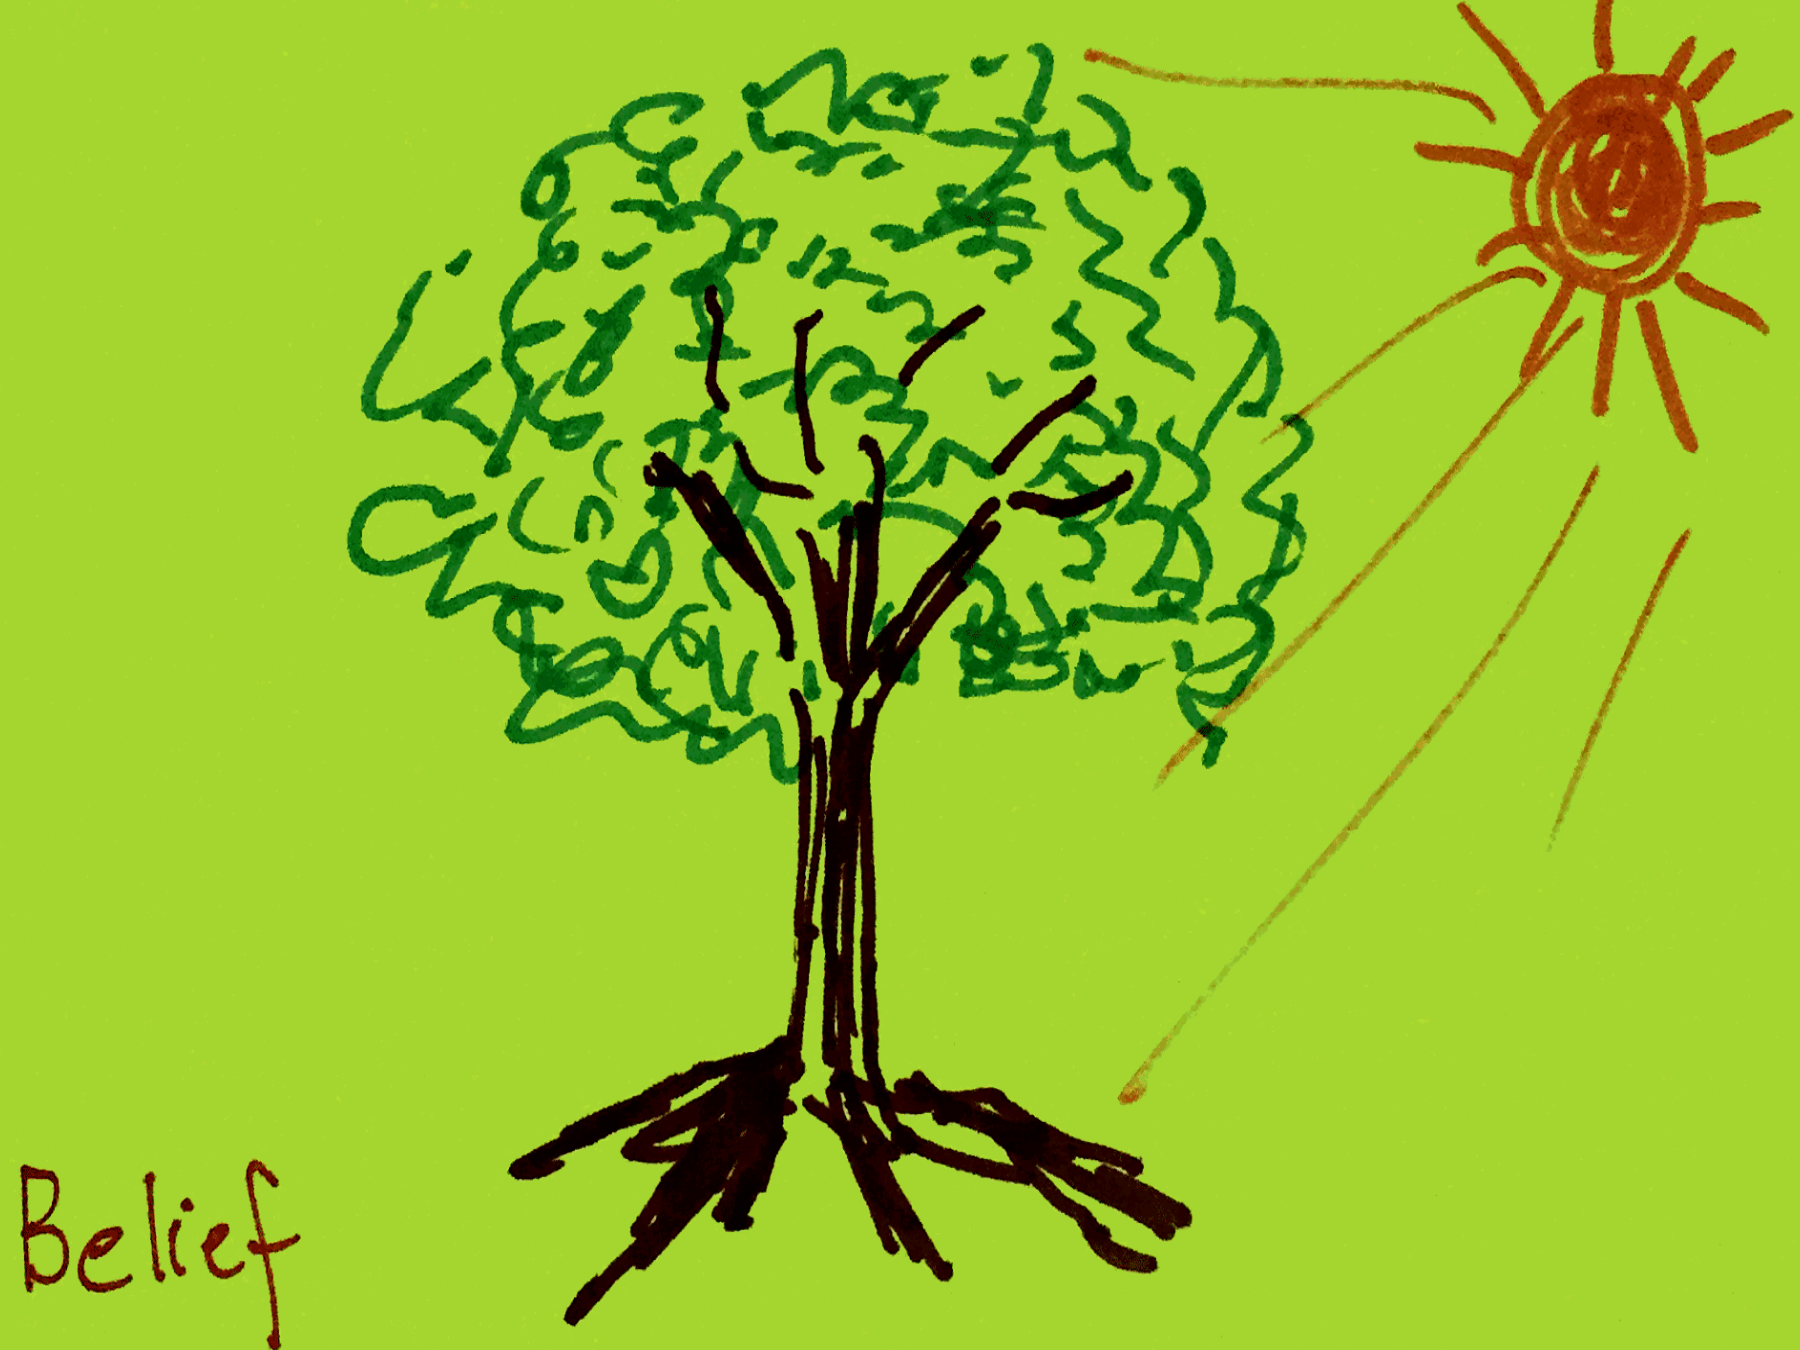 Belief StrengthsFinder Singapore Tree Growing Rooted Core Values